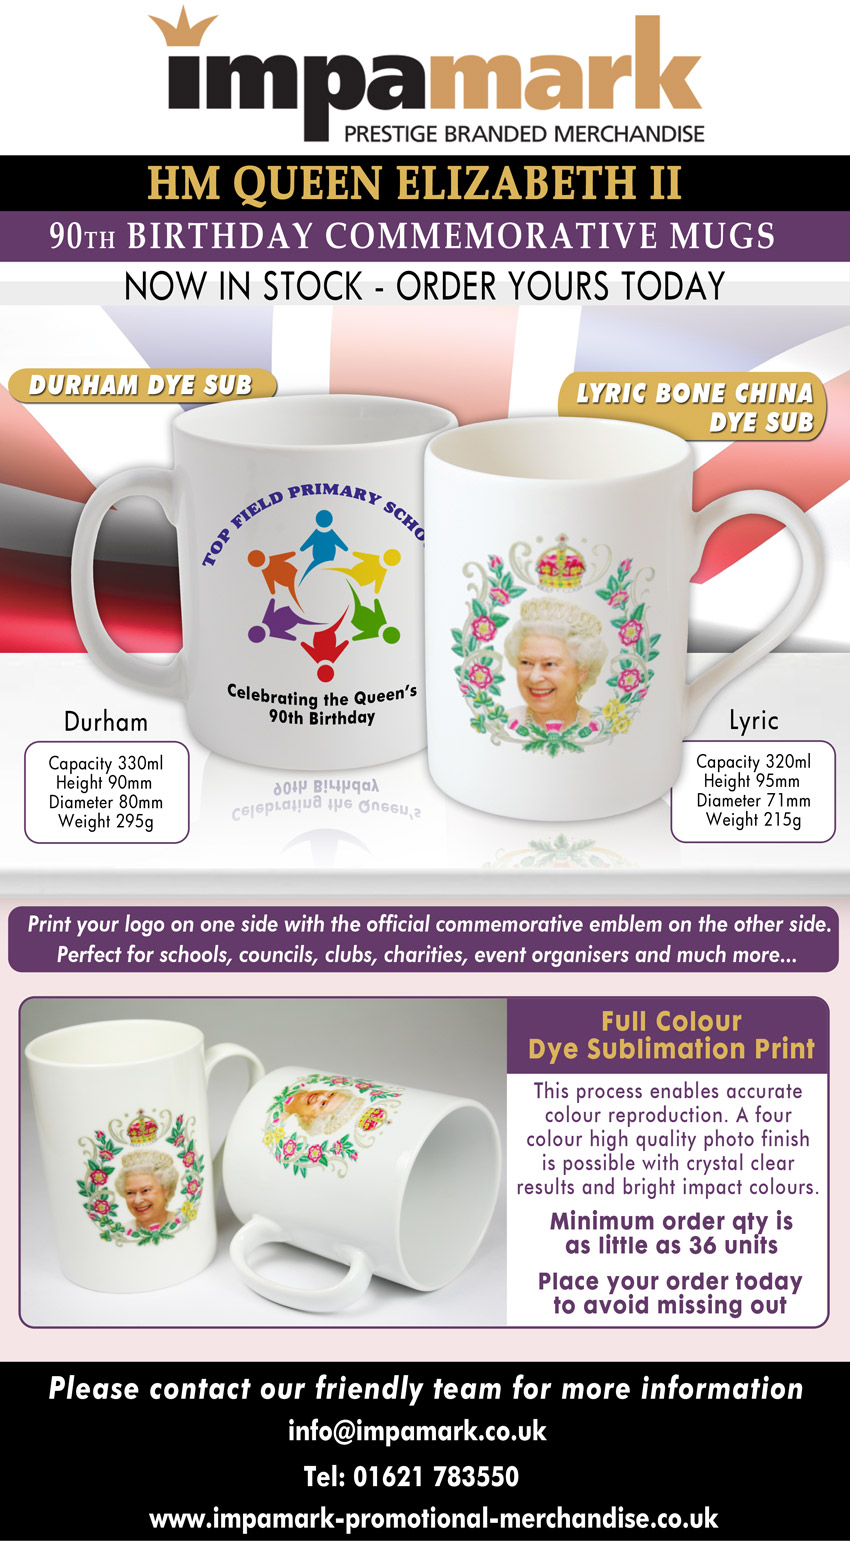 If you cannot see the image please Show Remote Images in your email client or see the full page here http://www.impamark-promotional-merchandise.co.uk/blog/queen-elizabeth-90th-anniversary-mugs/